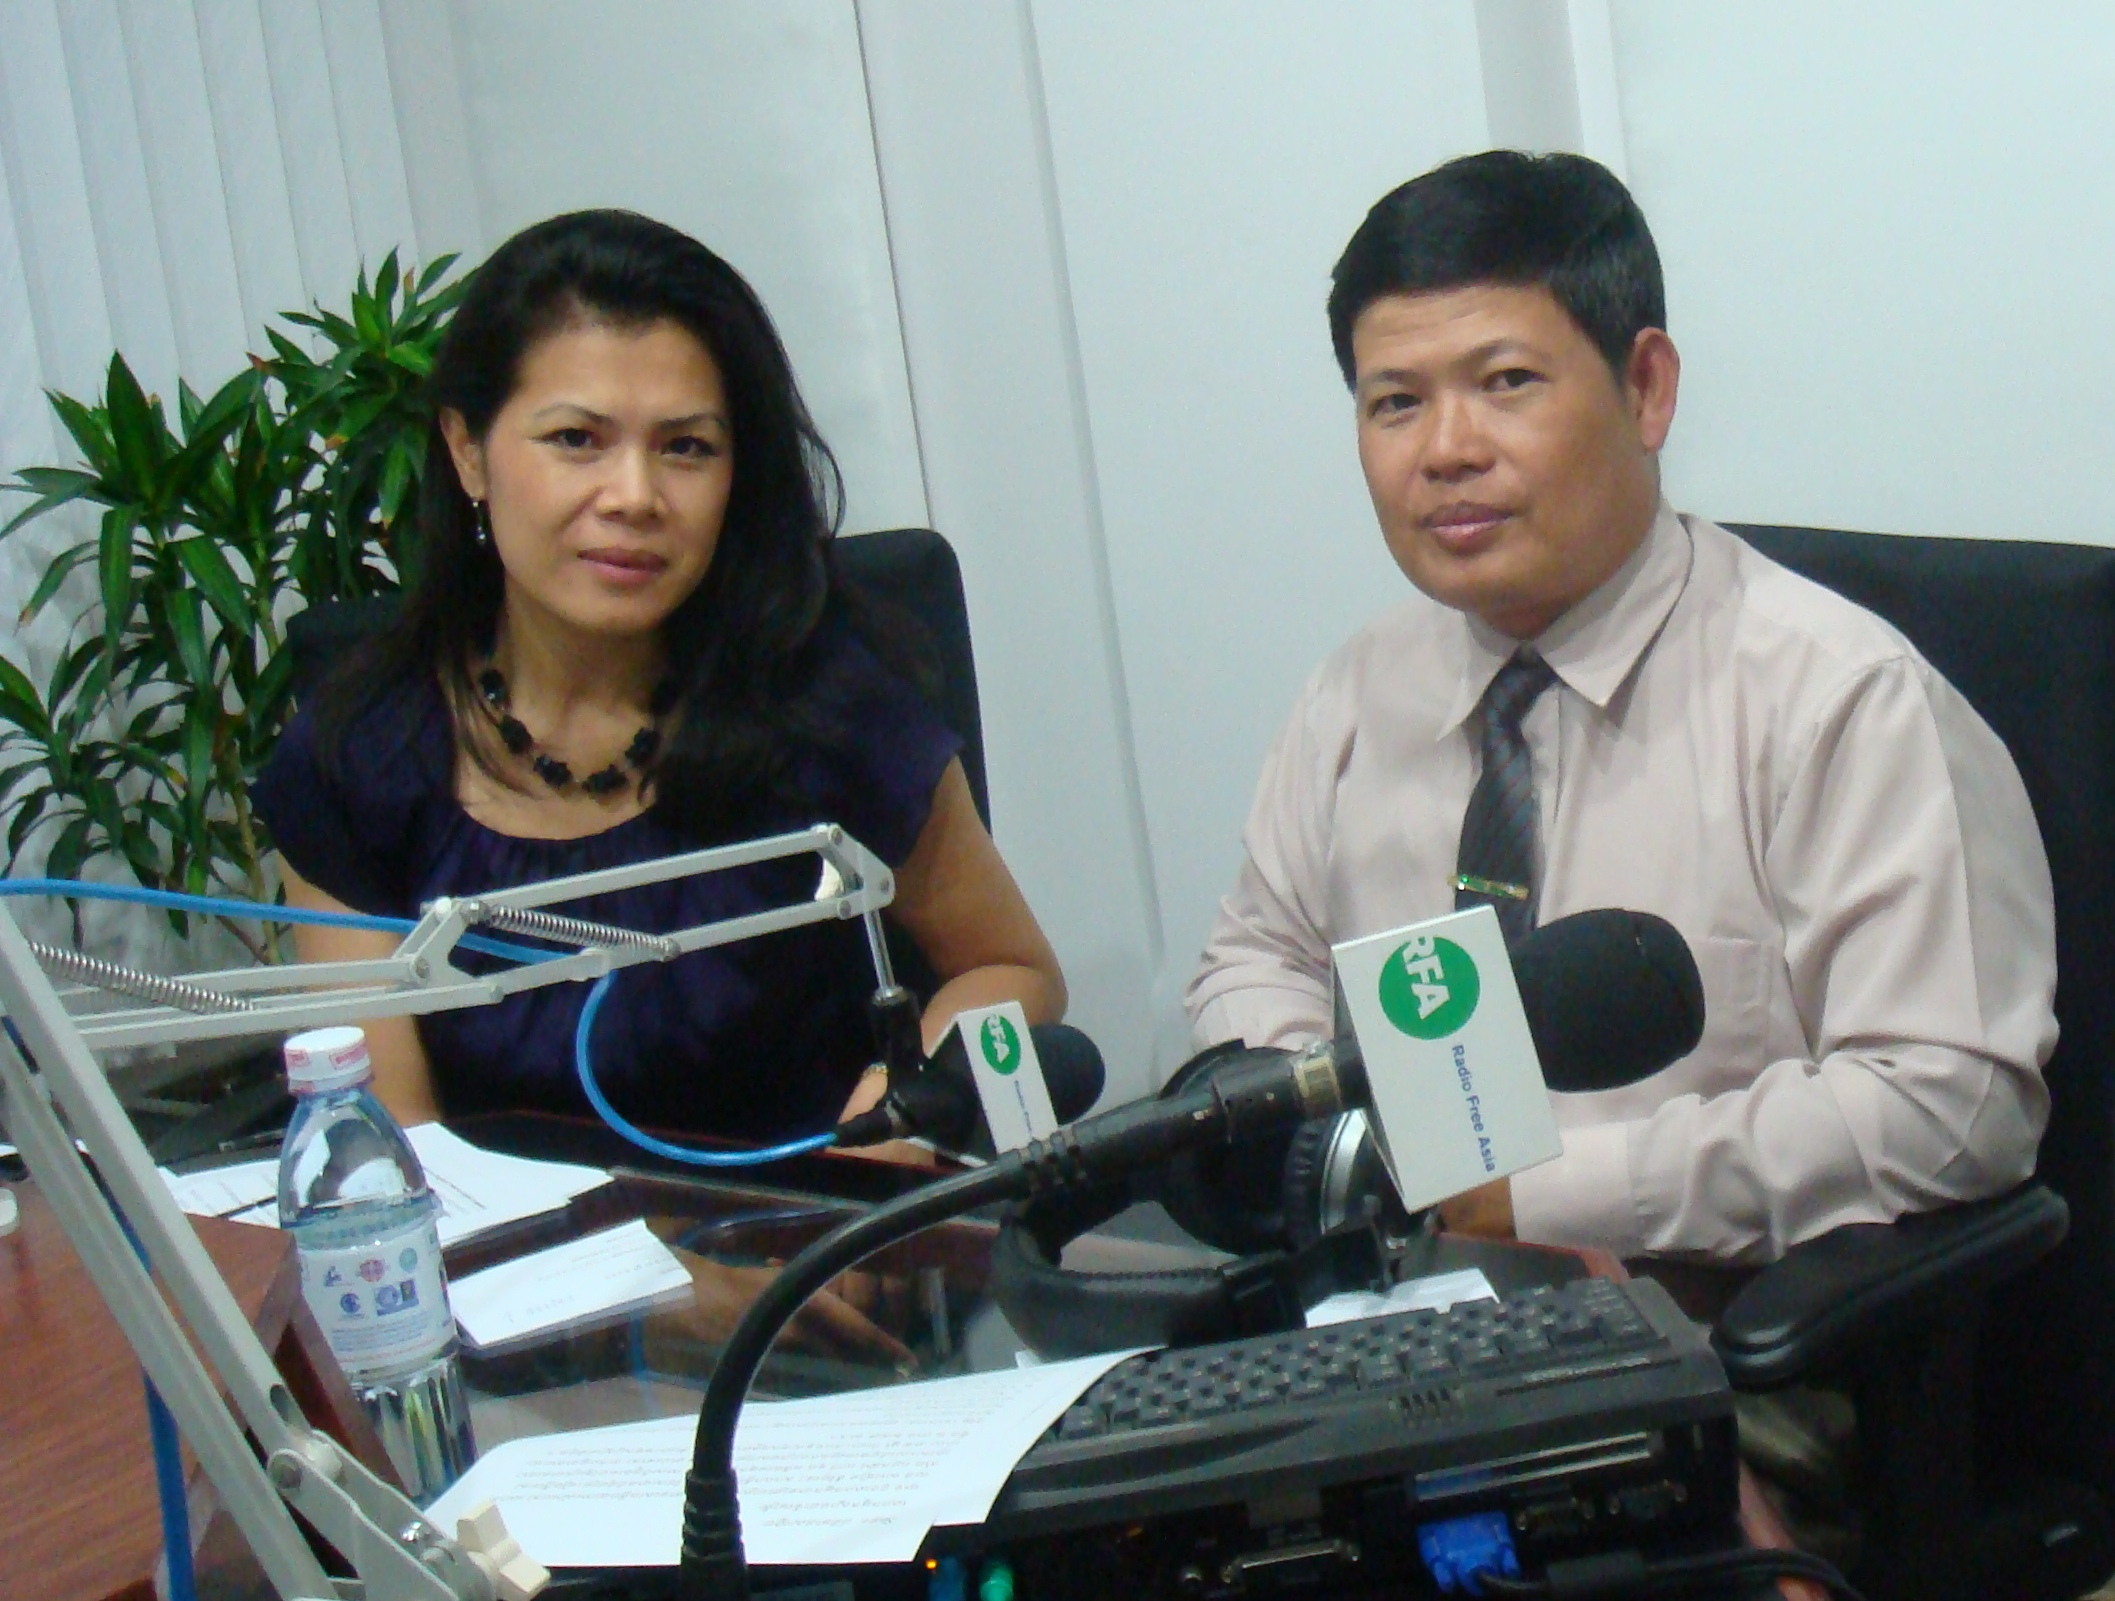 Theary Seng at RFA studio for call in show post Duch verdict, 26 July 2010